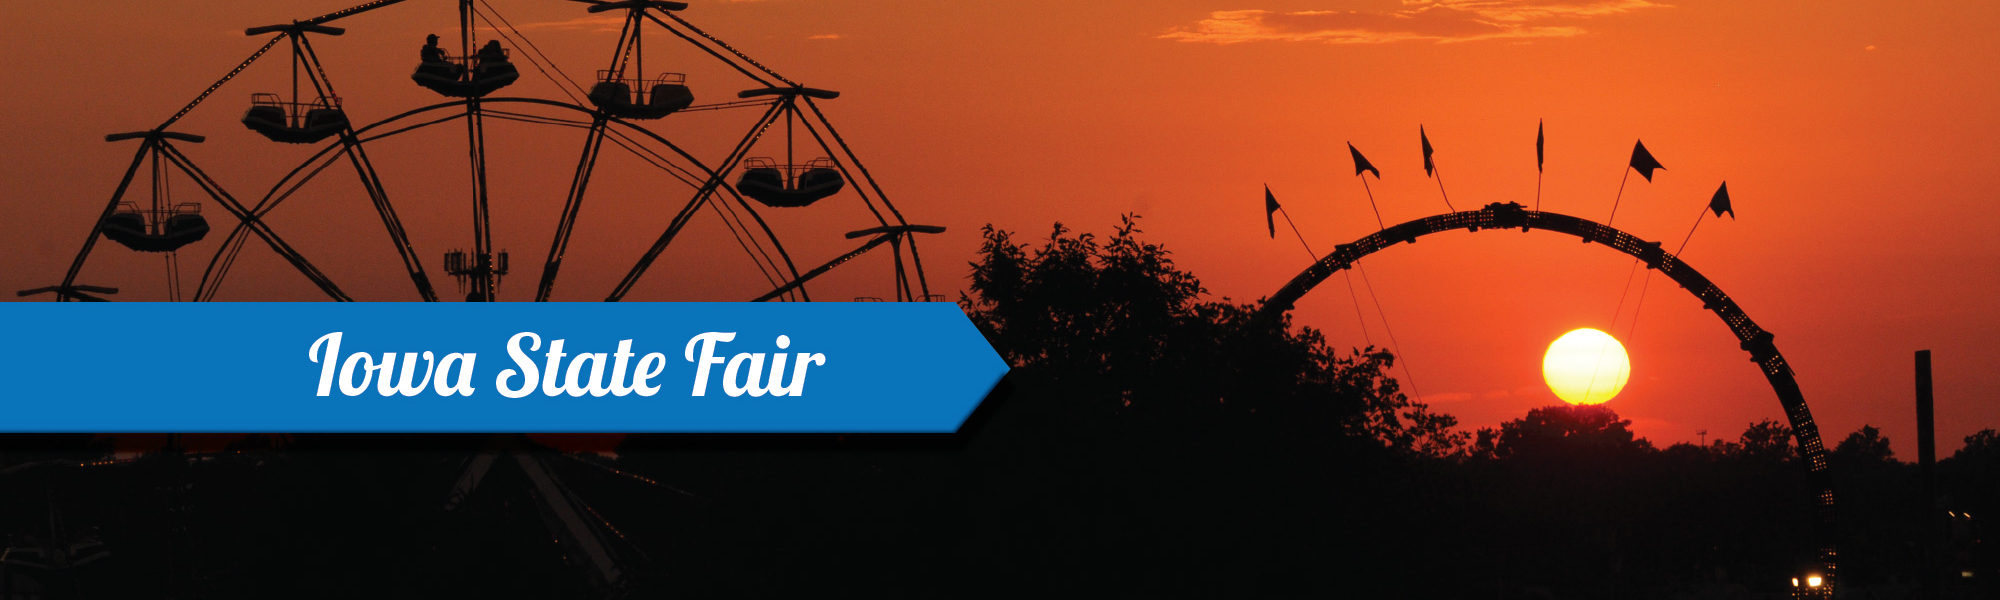 Central Iowa Tourism Region | Iowa State Fair